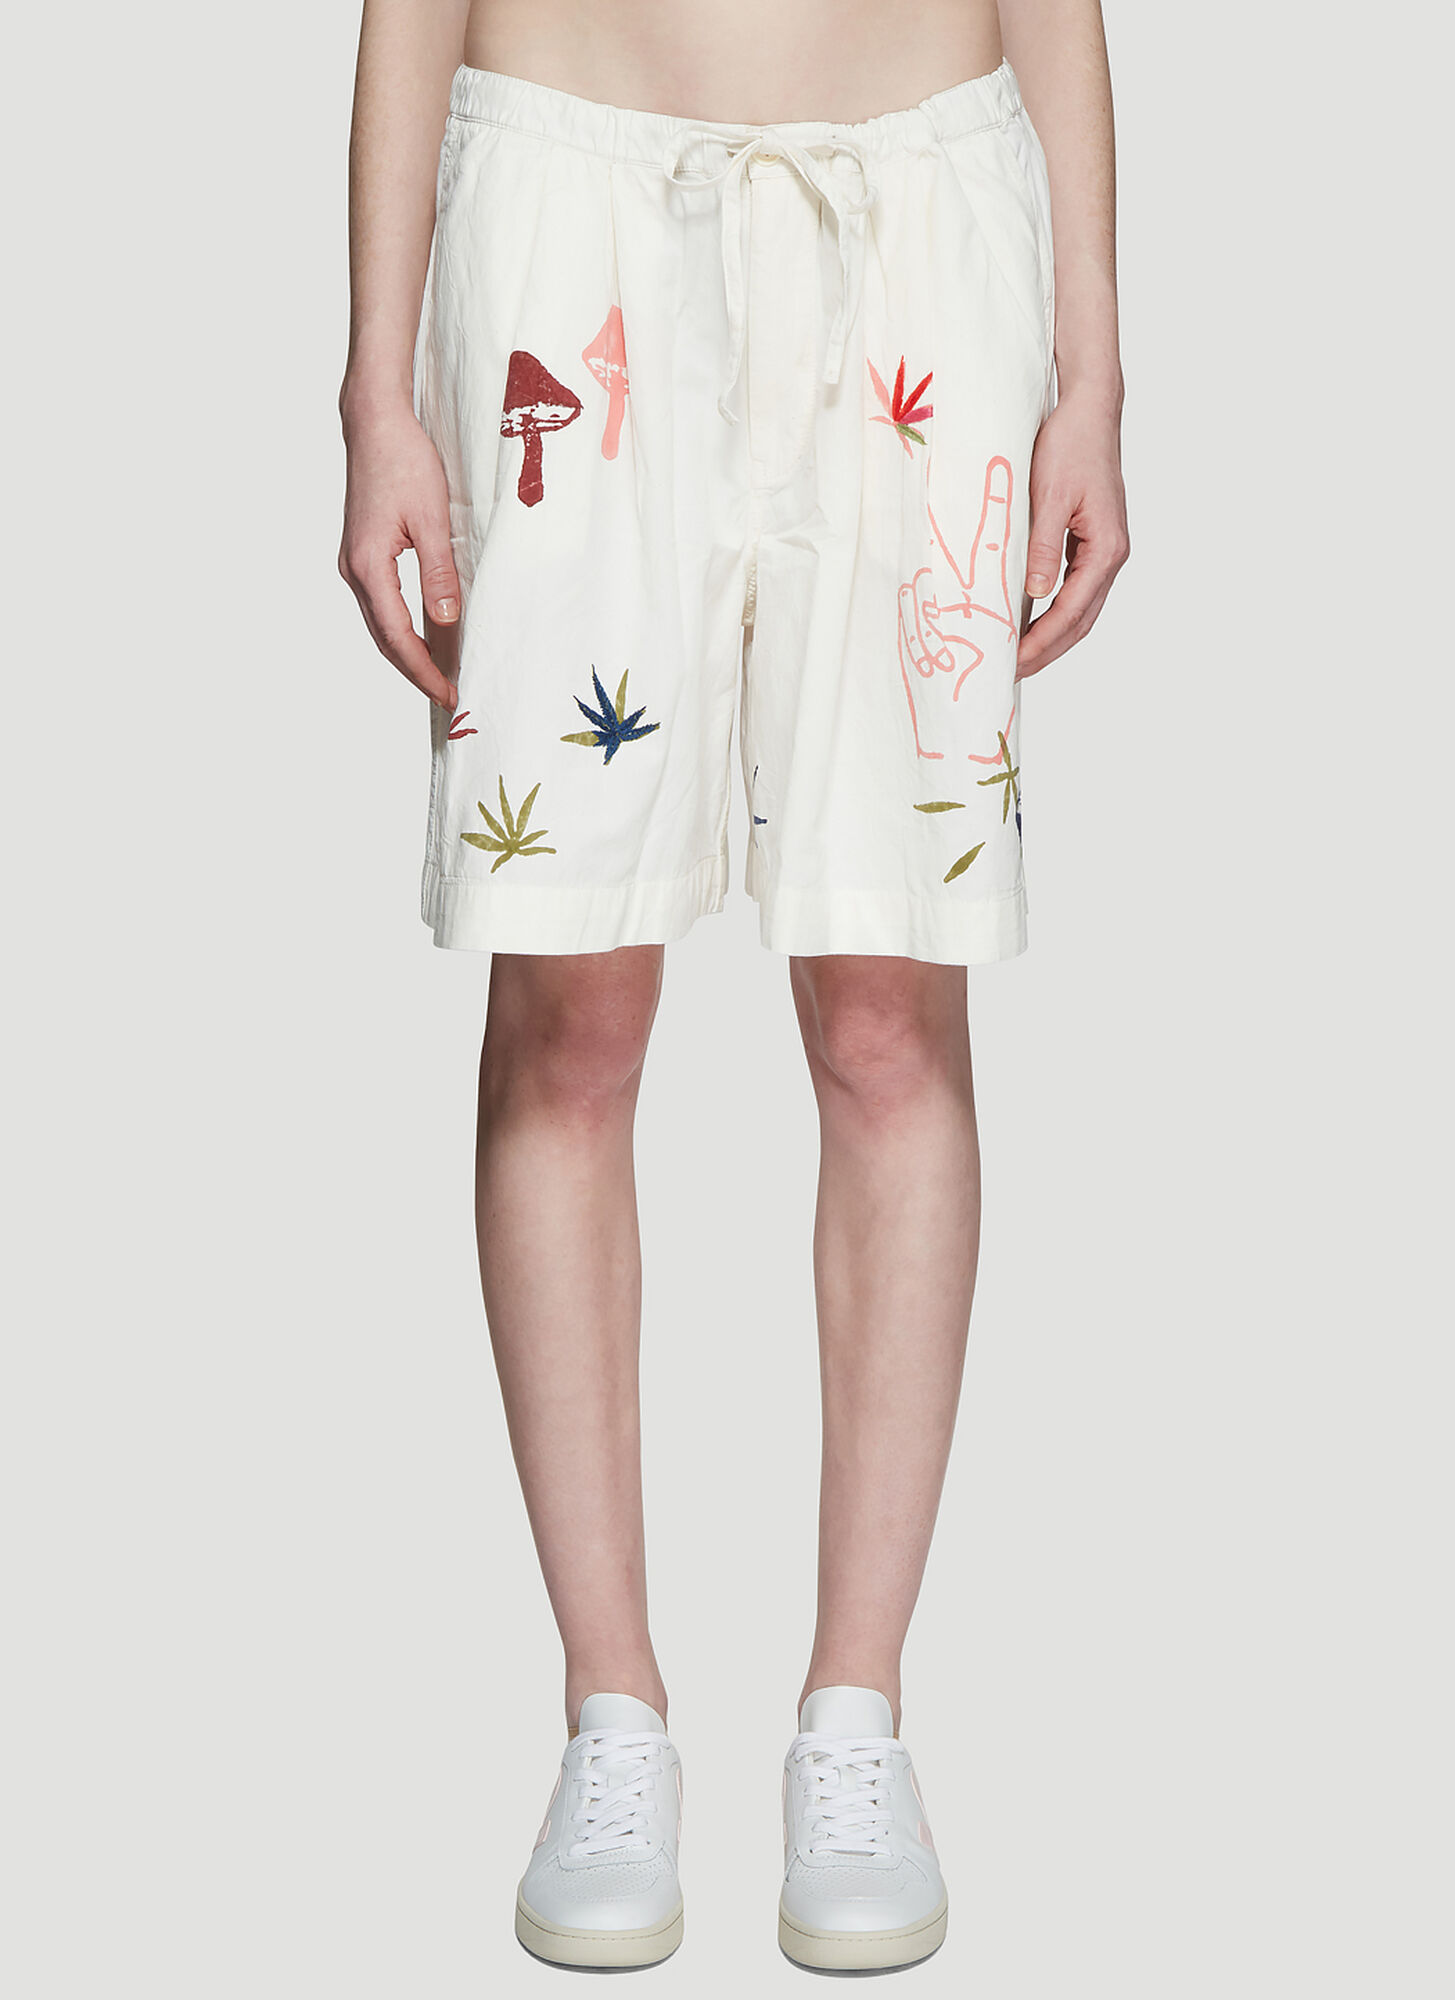 STORY Mfg. Strange Trip Shorts in White